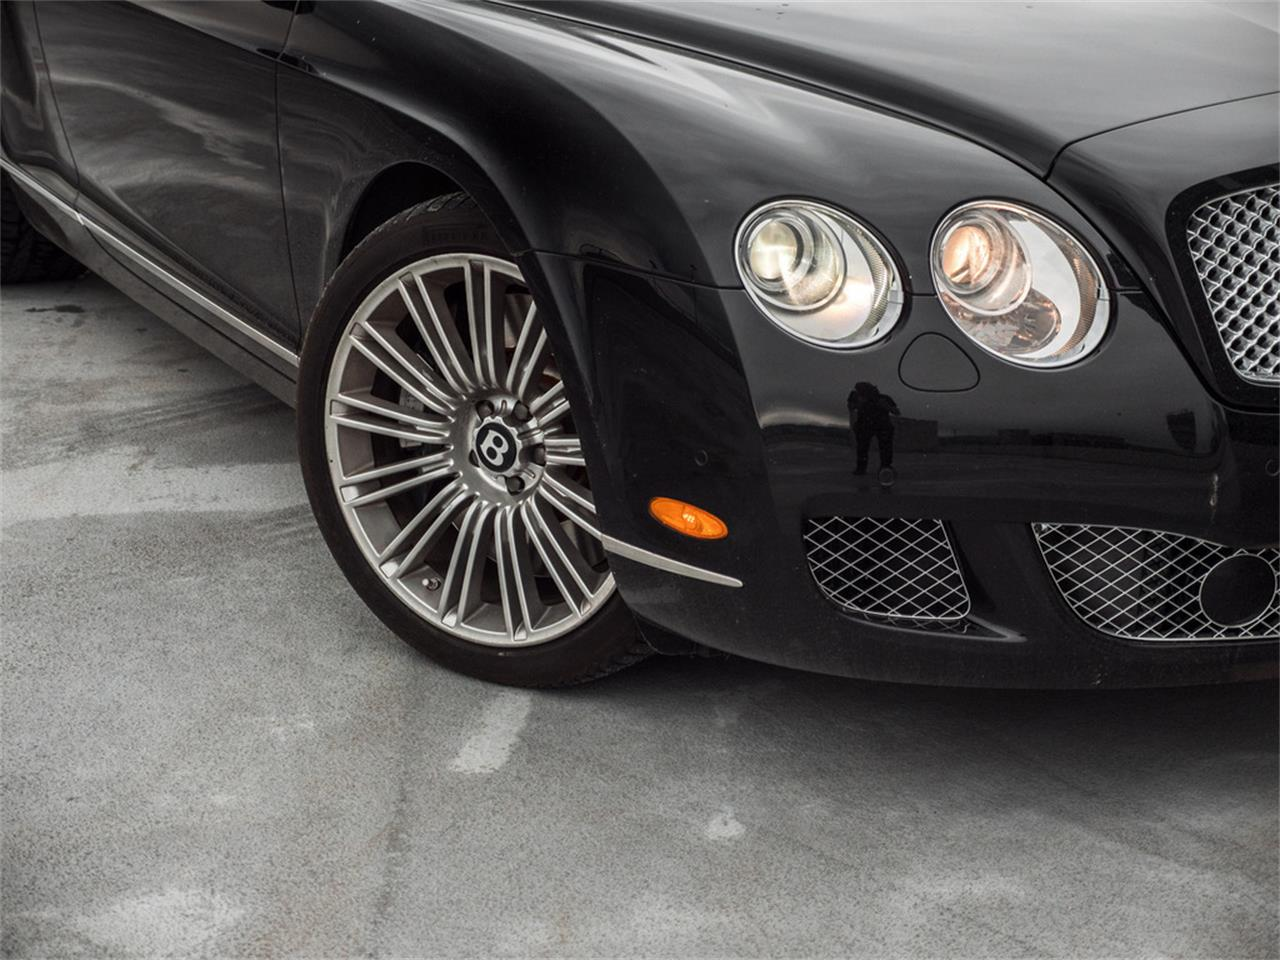 Large Picture of 2011 Continental located in Kelowna British Columbia - $91,819.00 Offered by August Motorcars - QA5D